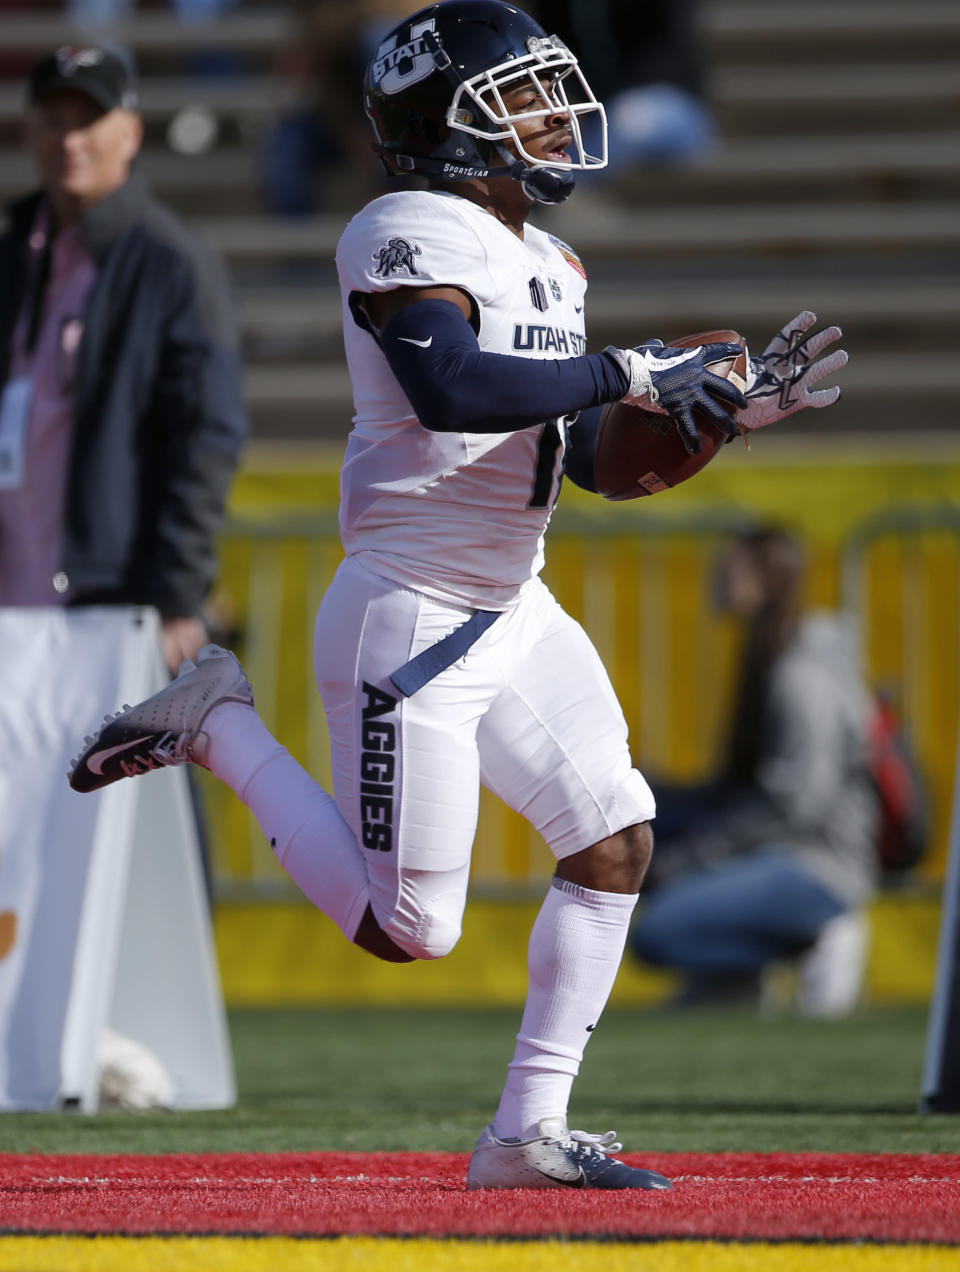 Utah State wide receiver Aaren Vaughns scores a touchdown against North Texas during the first half of the New Mexico Bowl NCAA college football game in Albuquerque, N.M., Saturday, Dec. 15, 2018. (AP Photo/Andres Leighton)